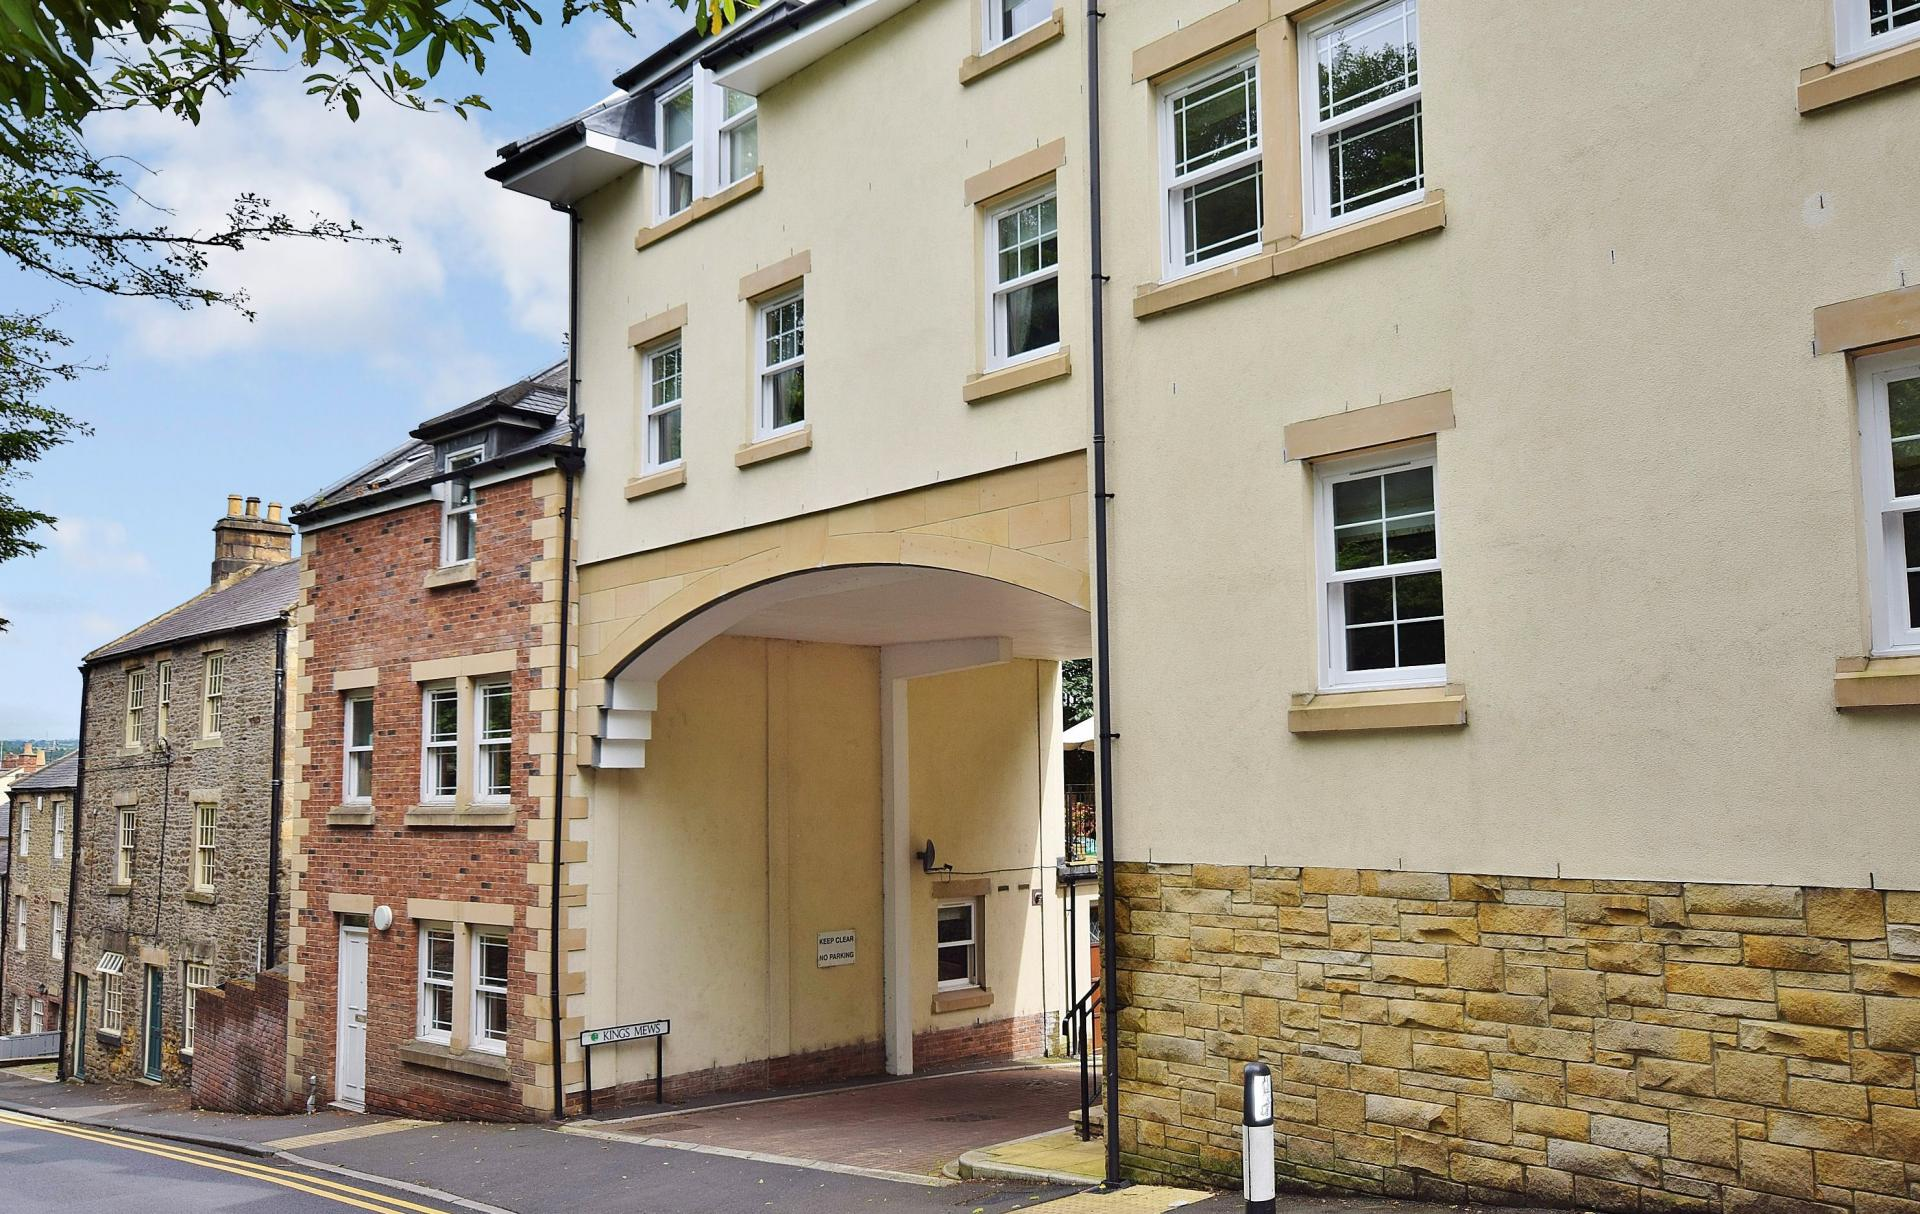 2 Bedrooms Studio Flat for sale in Kings Mews, Hexham